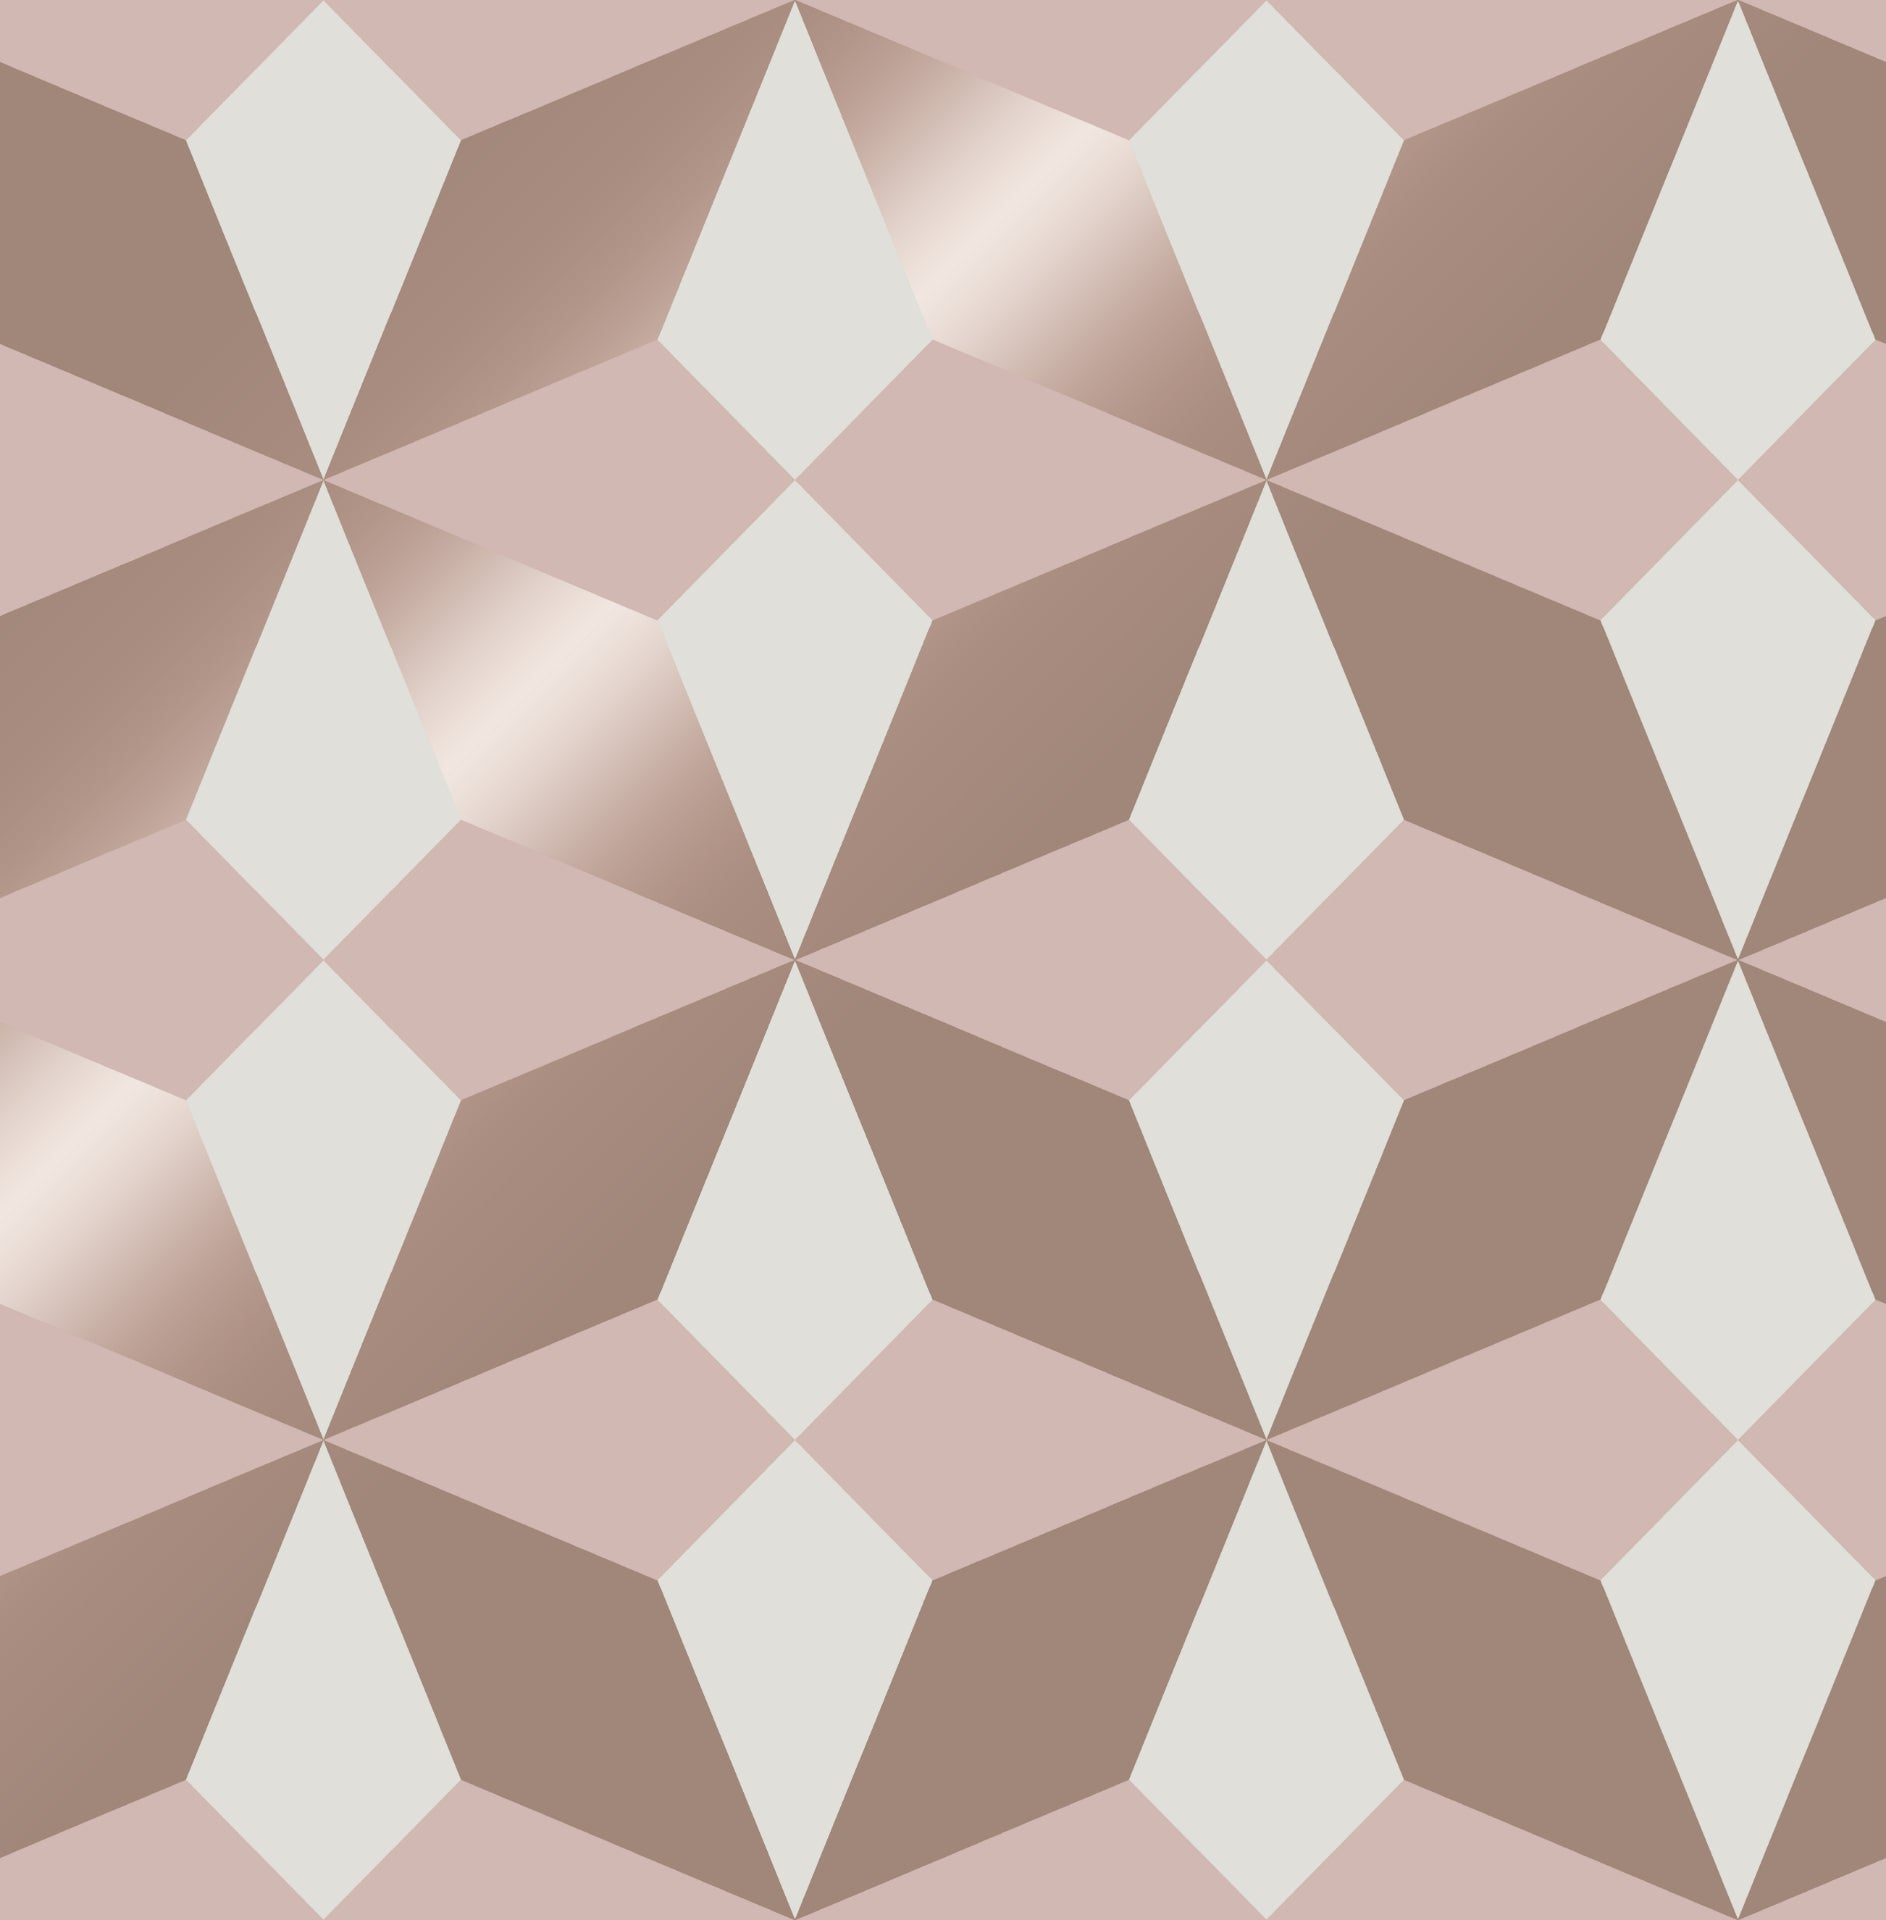 Fine Decor Wallpaper Nova Geo Rose Gold Pink Fd42547 Wonderwall By Nobletts